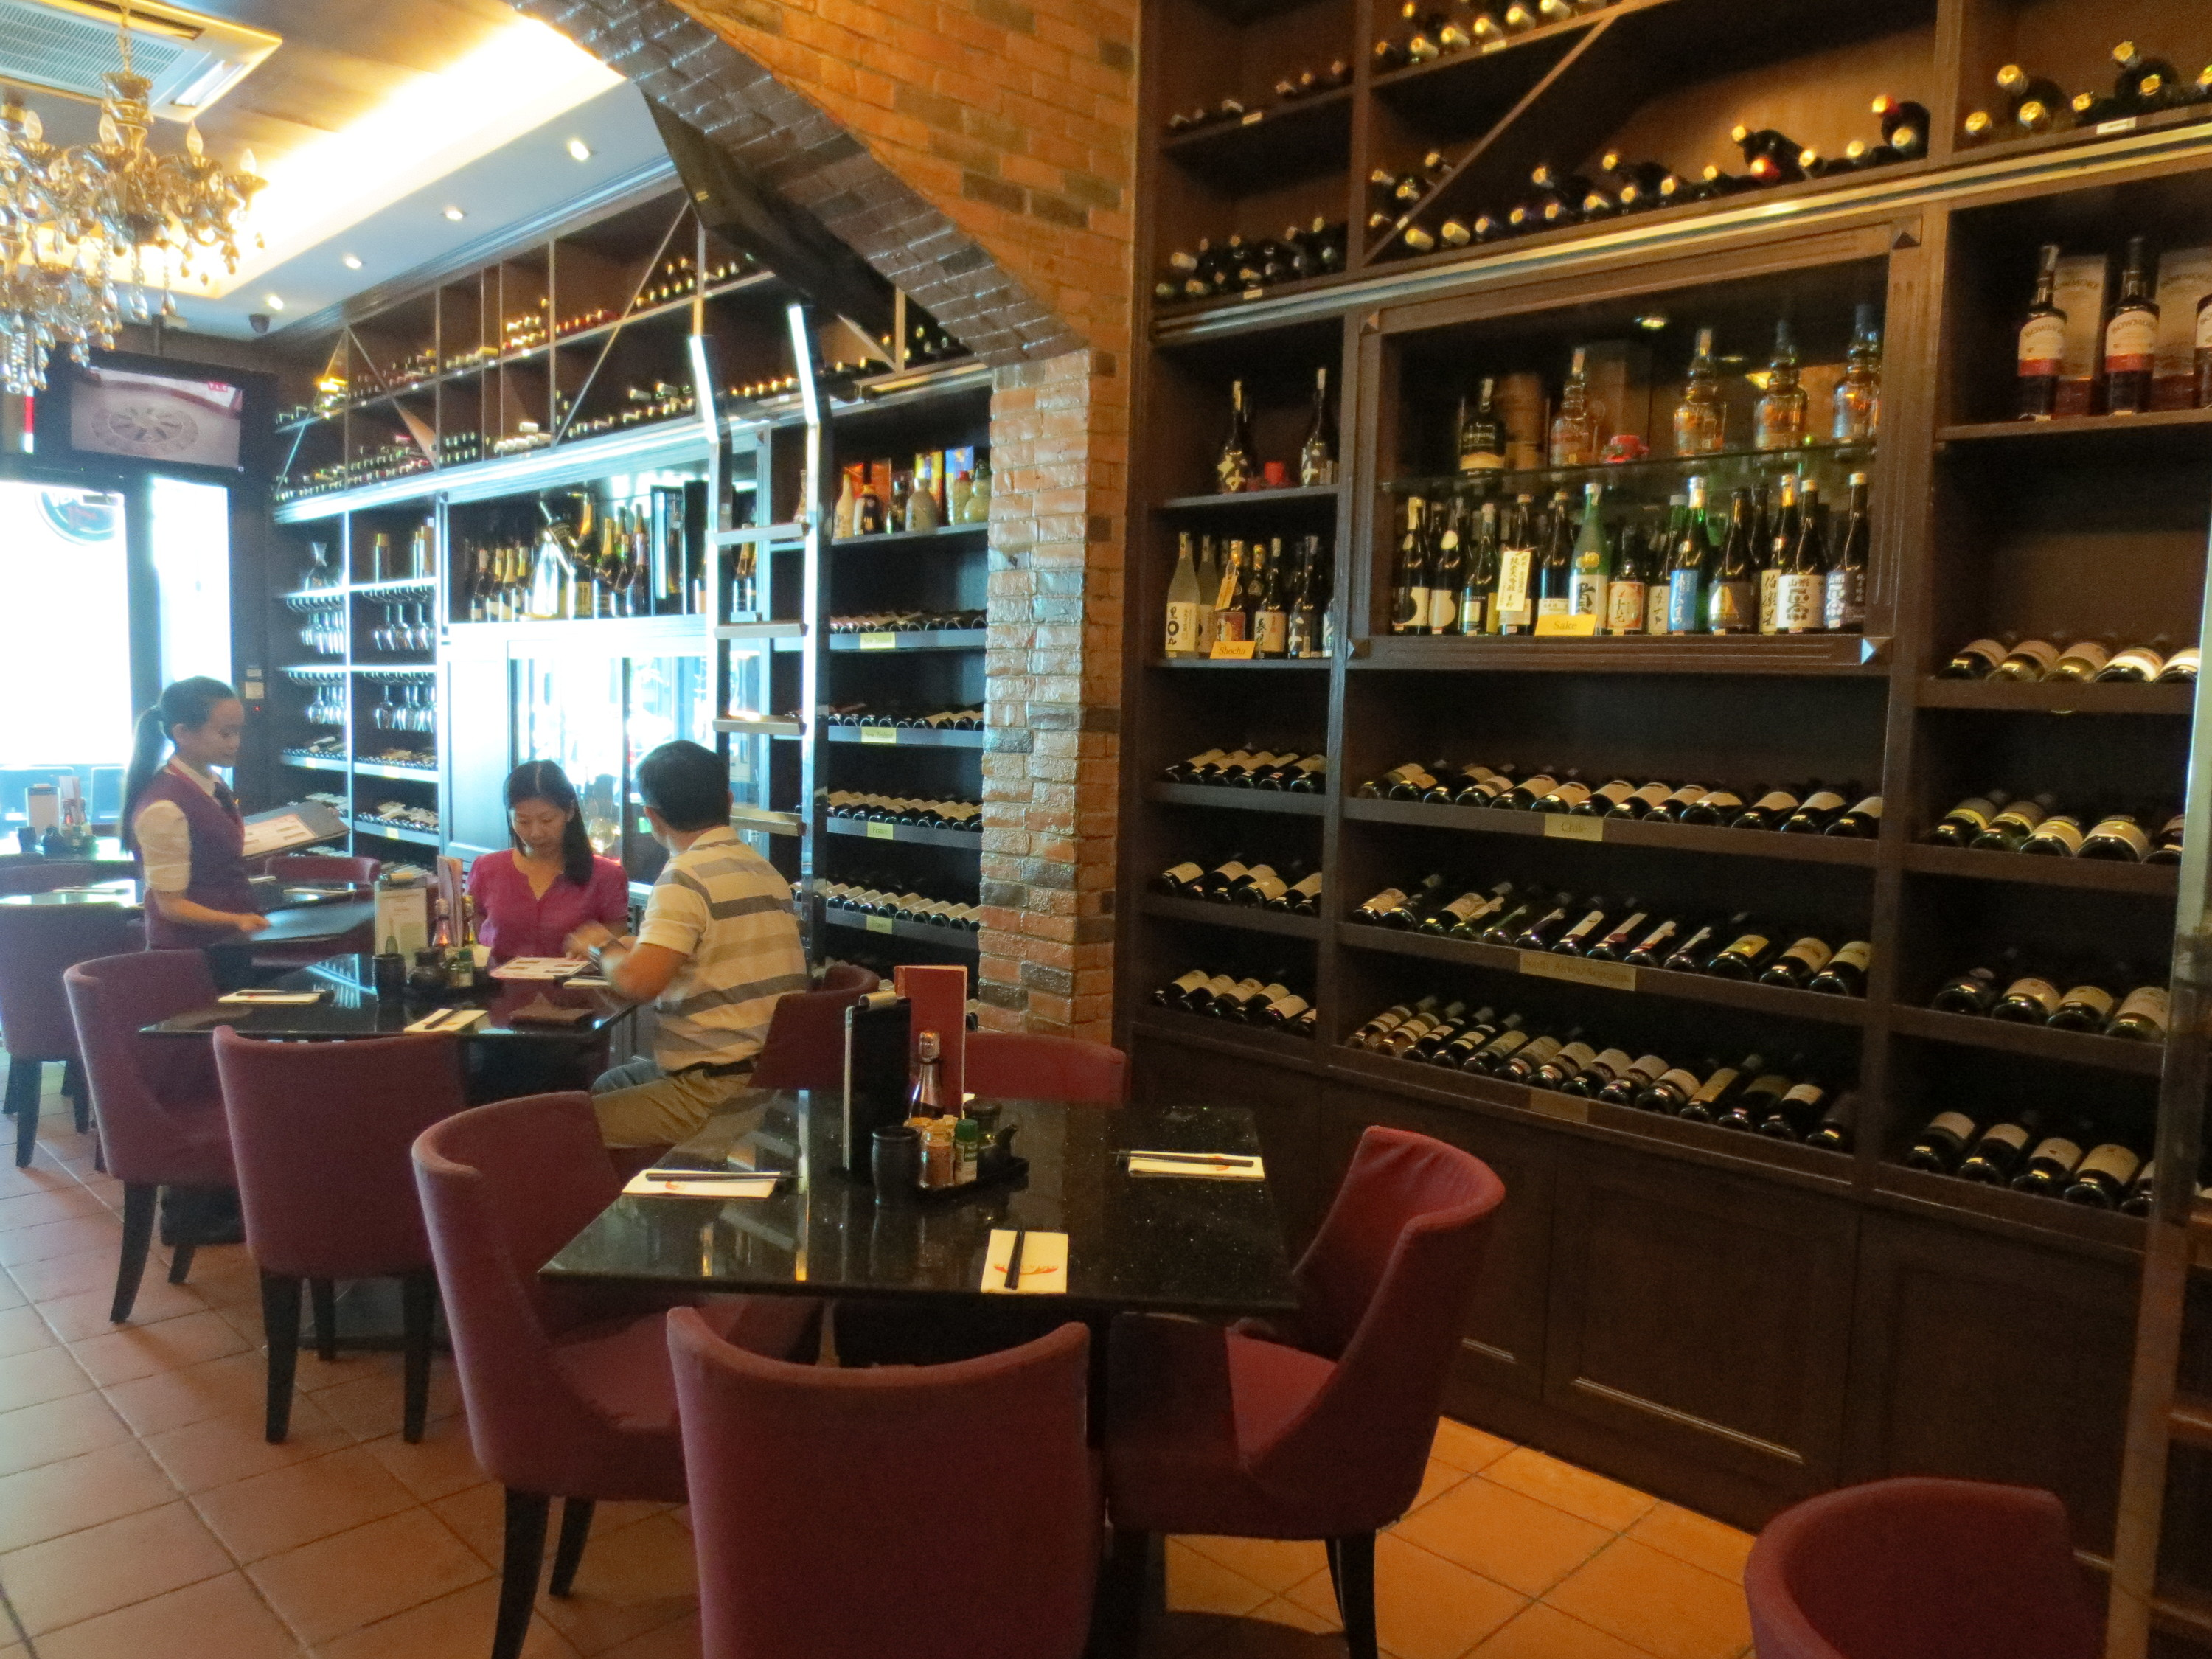 Vino Vino Bar and Restaurant